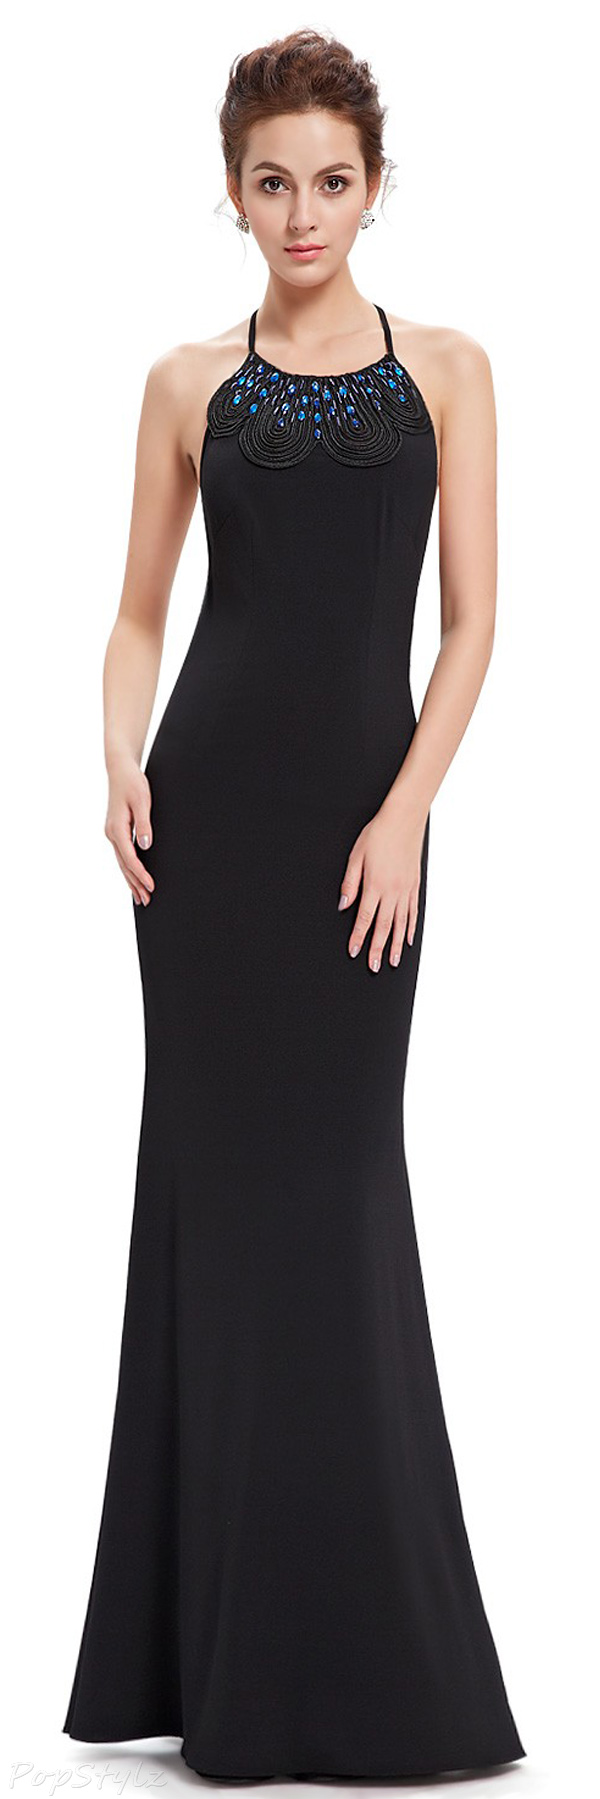 Ever Pretty 08558 Long Black Sleeveless Halter Evening Dress